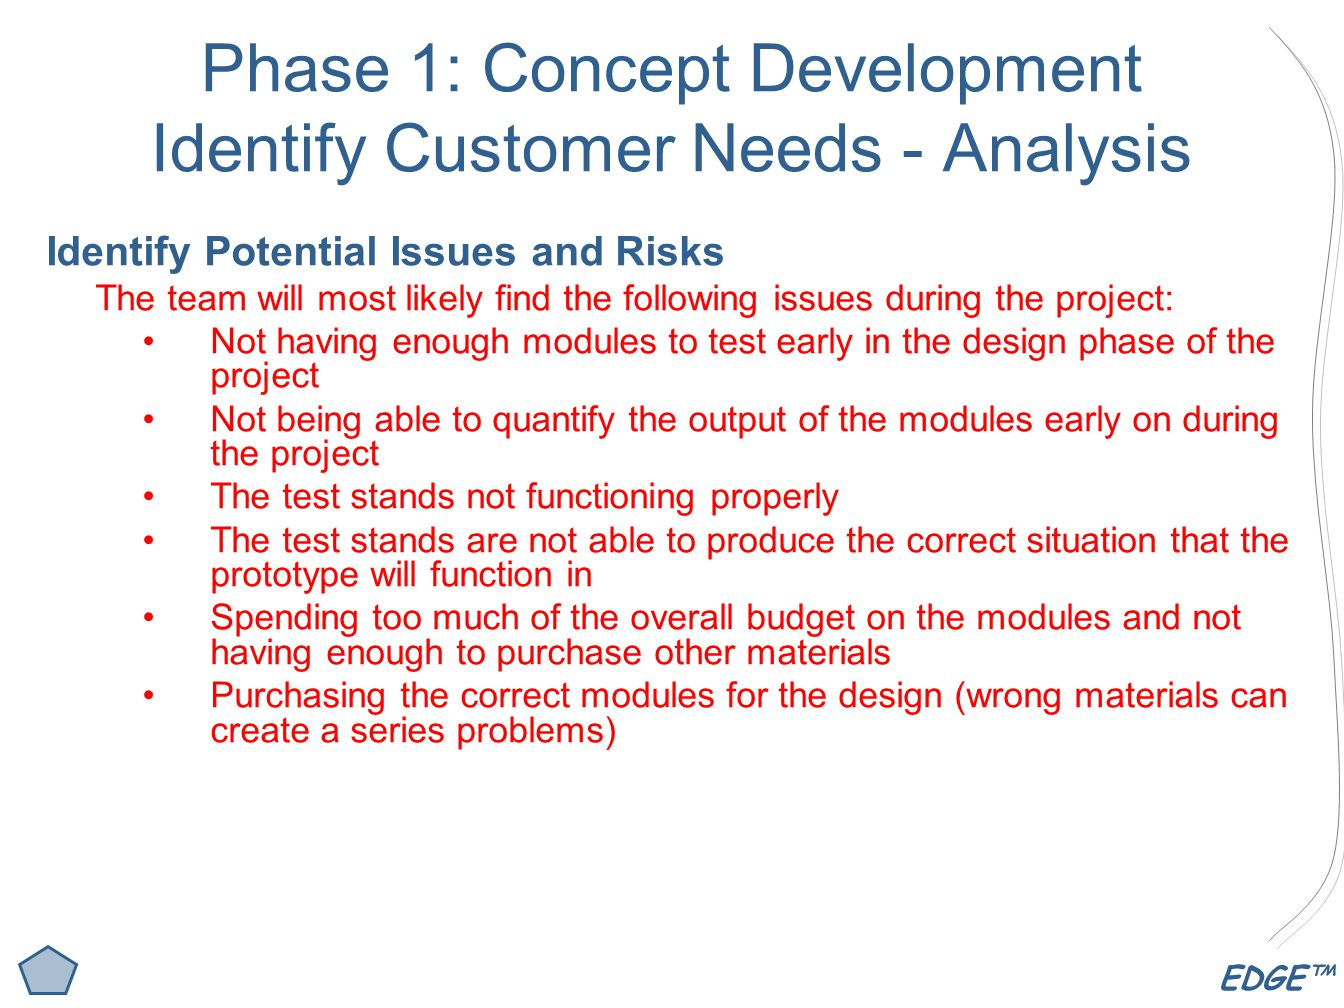 EDGE™ Phase 1: Concept Development Identify Customer Needs - Analysis Identify Potential Issues and Risks The team will most likely find the following issues during the project: Not having enough modules to test early in the design phase of the project Not being able to quantify the output of the modules early on during the project The test stands not functioning properly The test stands are not able to produce the correct situation that the prototype will function in Spending too much of the overall budget on the modules and not having enough to purchase other materials Purchasing the correct modules for the design (wrong materials can create a series problems)